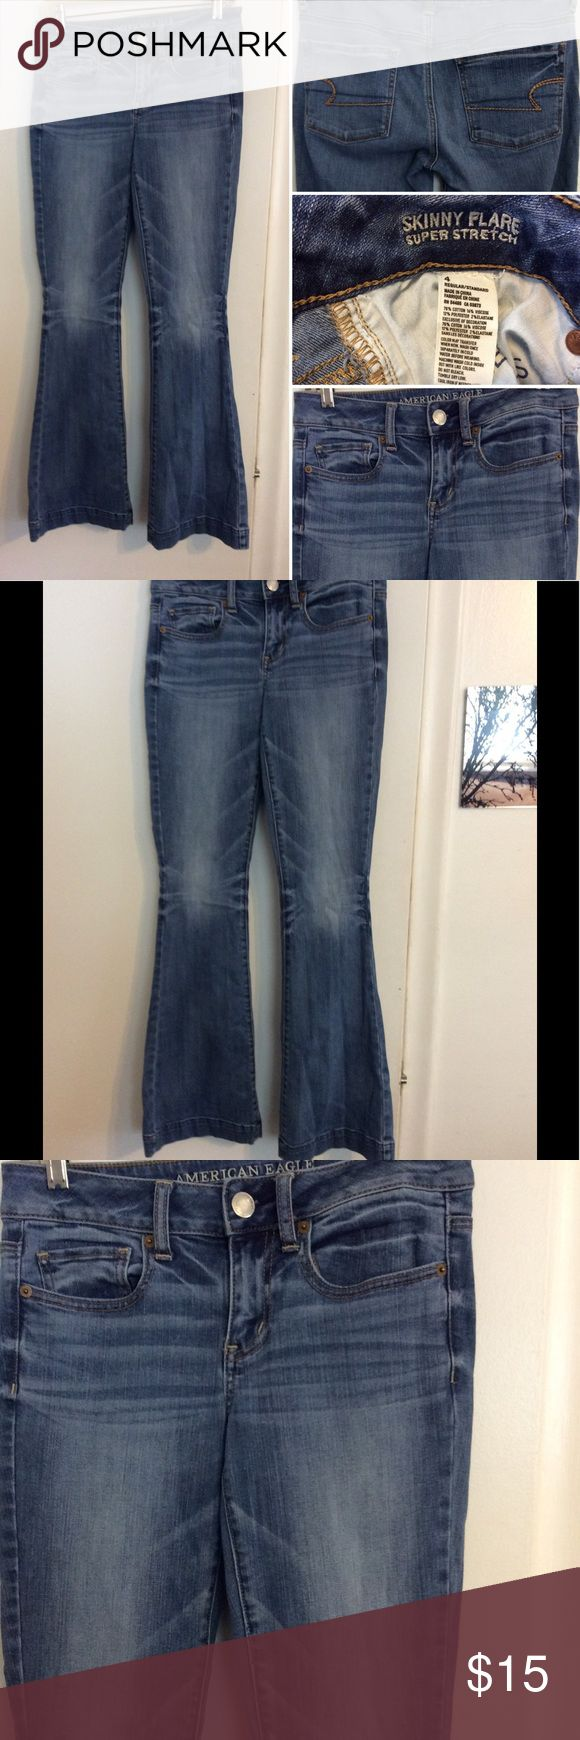 American Eagle Skinny Flare Super Stretch Jeans These American Eagle skinny flare jeans are in excellent new like condition. They are a super stretch denim and have a factory hem at the bottom. They are a size 4 and are a cotton blend American Eagle Outfitters Jeans Skinny